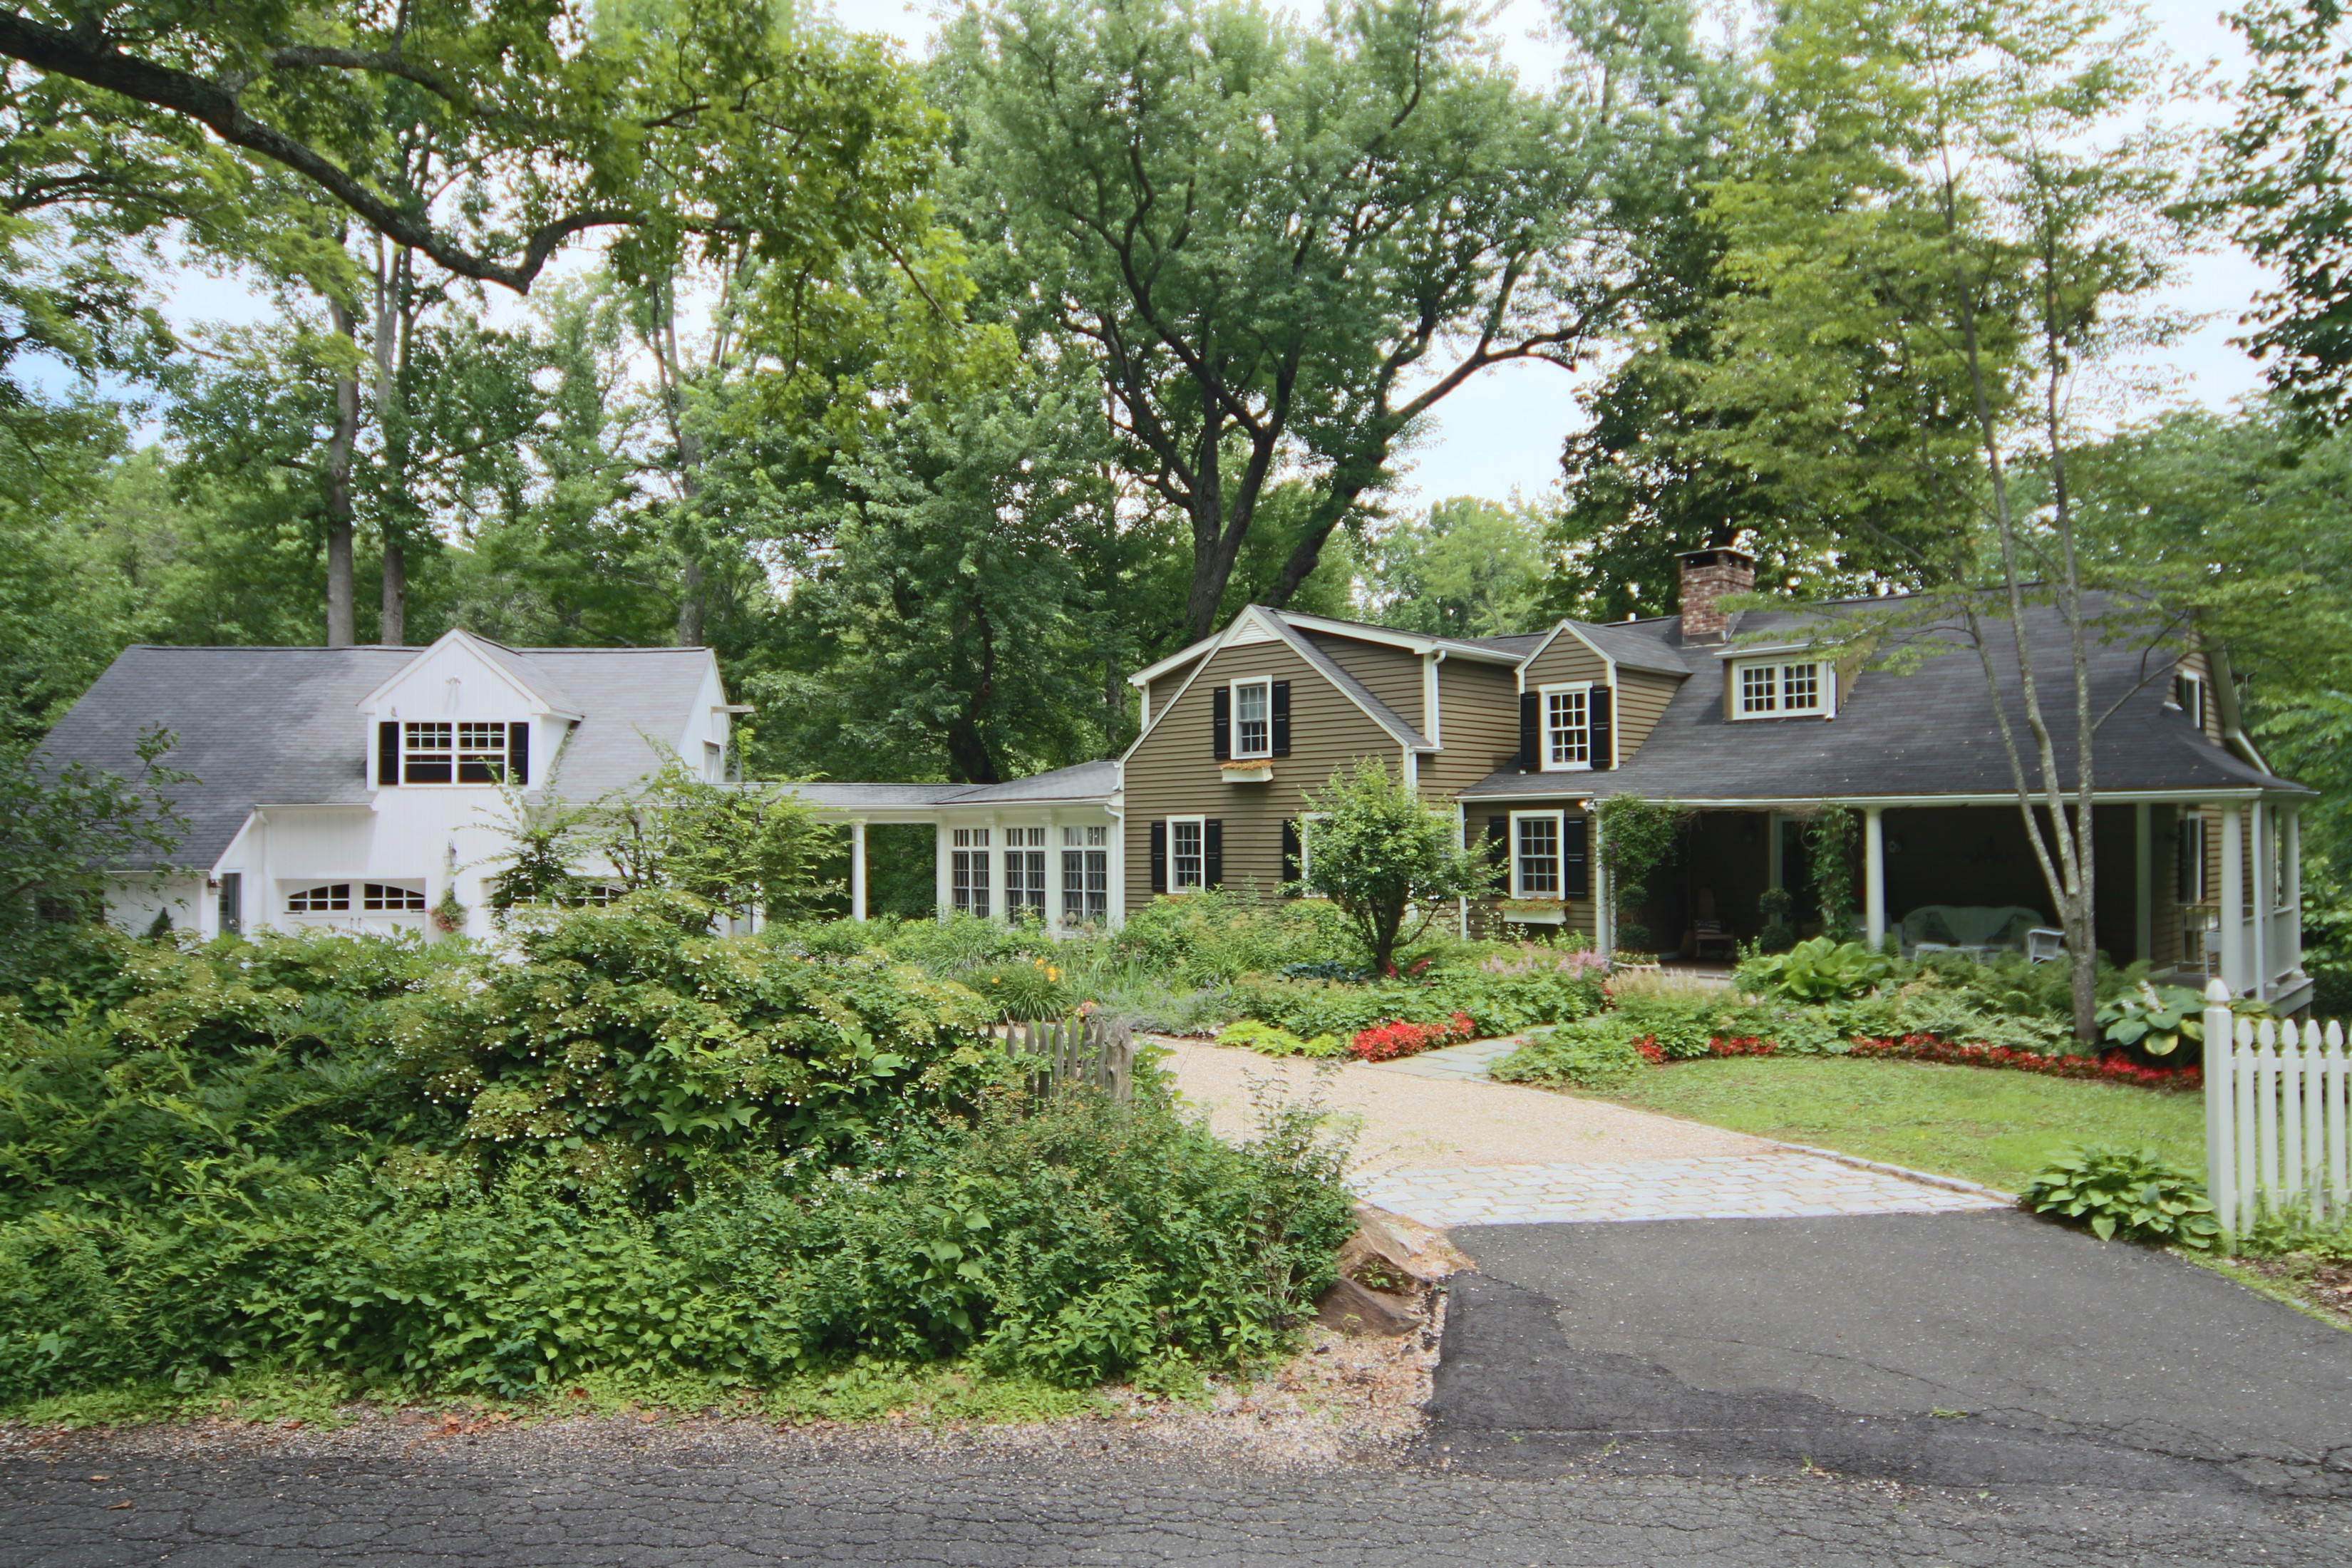 Single Family Home for Sale at The Stephen Fry Farm 109 Limekiln Road Ridgefield, Connecticut 06877 United States